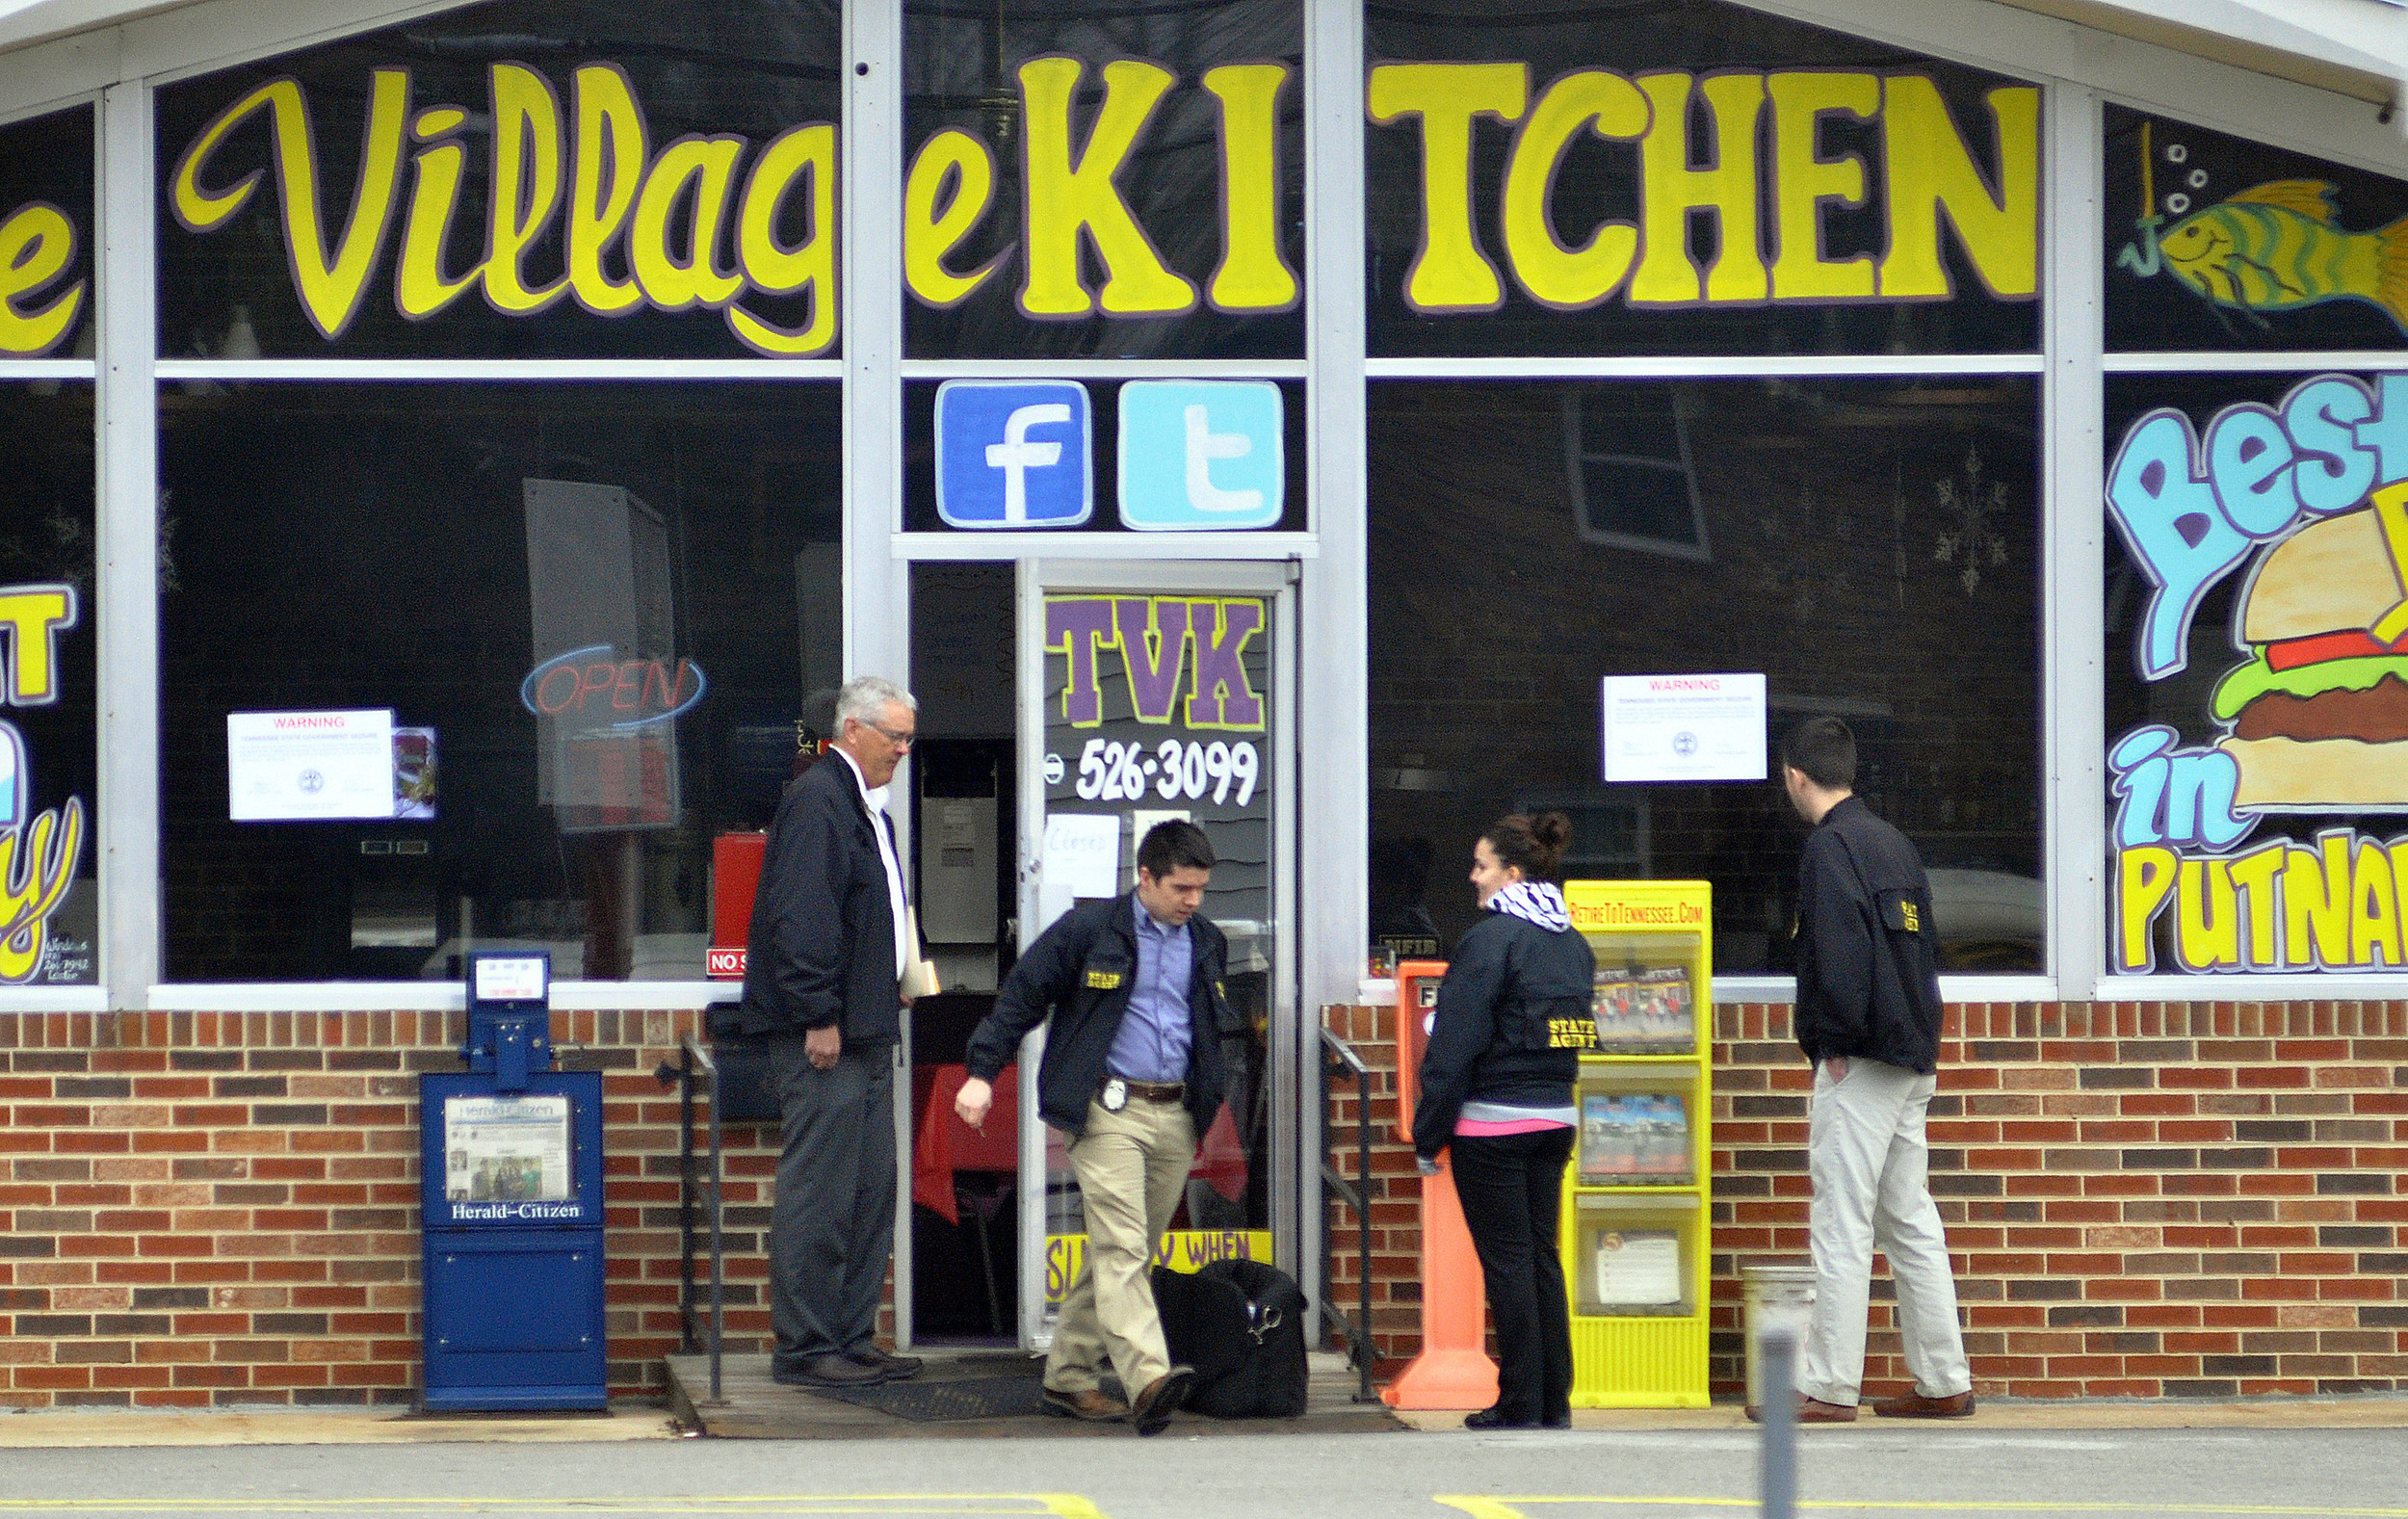 Village Kitchen seized by the state for failure to pay taxes